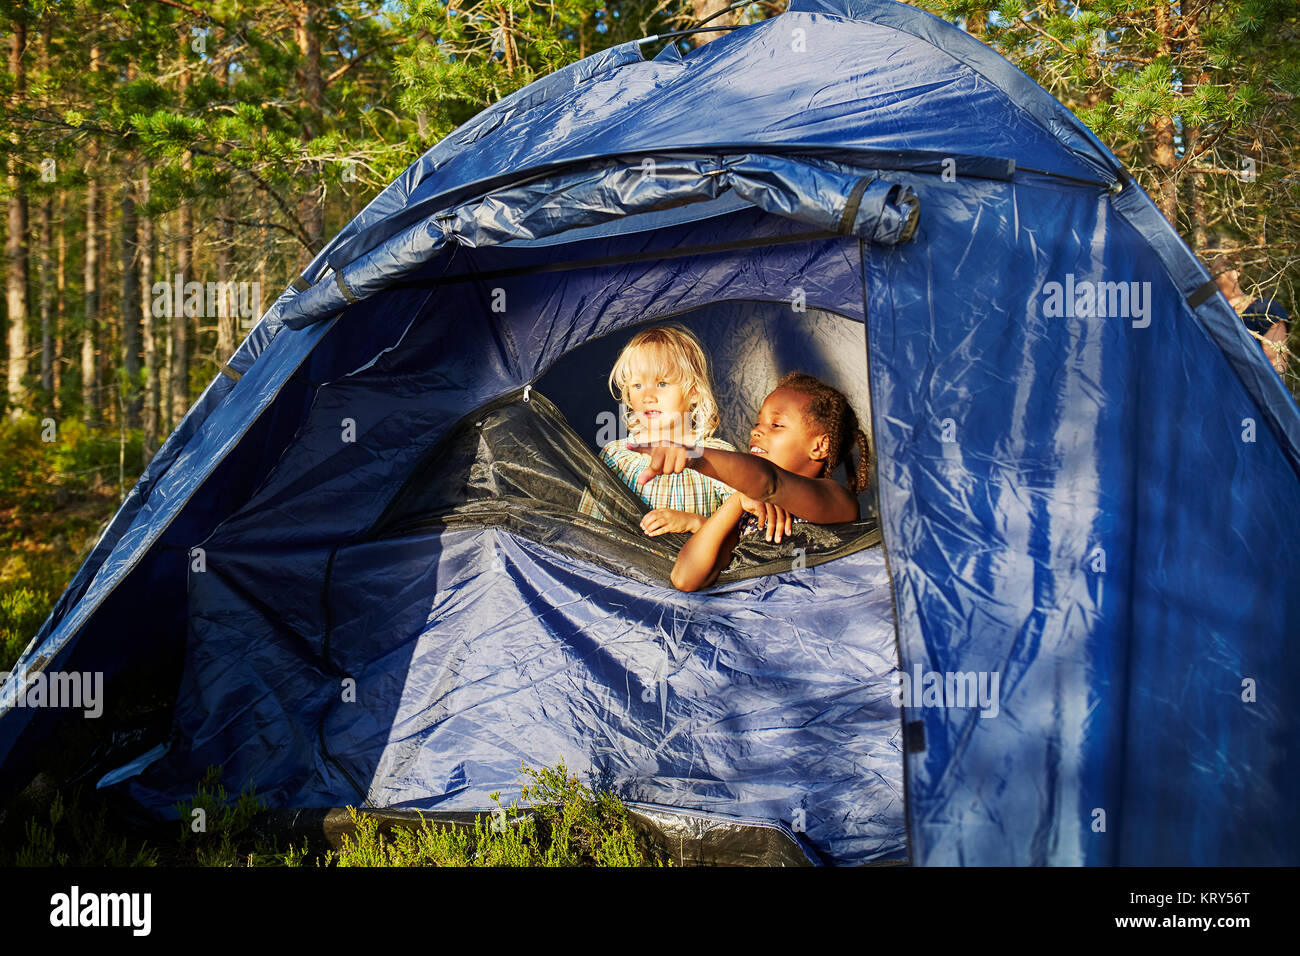 Girls in a blue tent - Stock Image